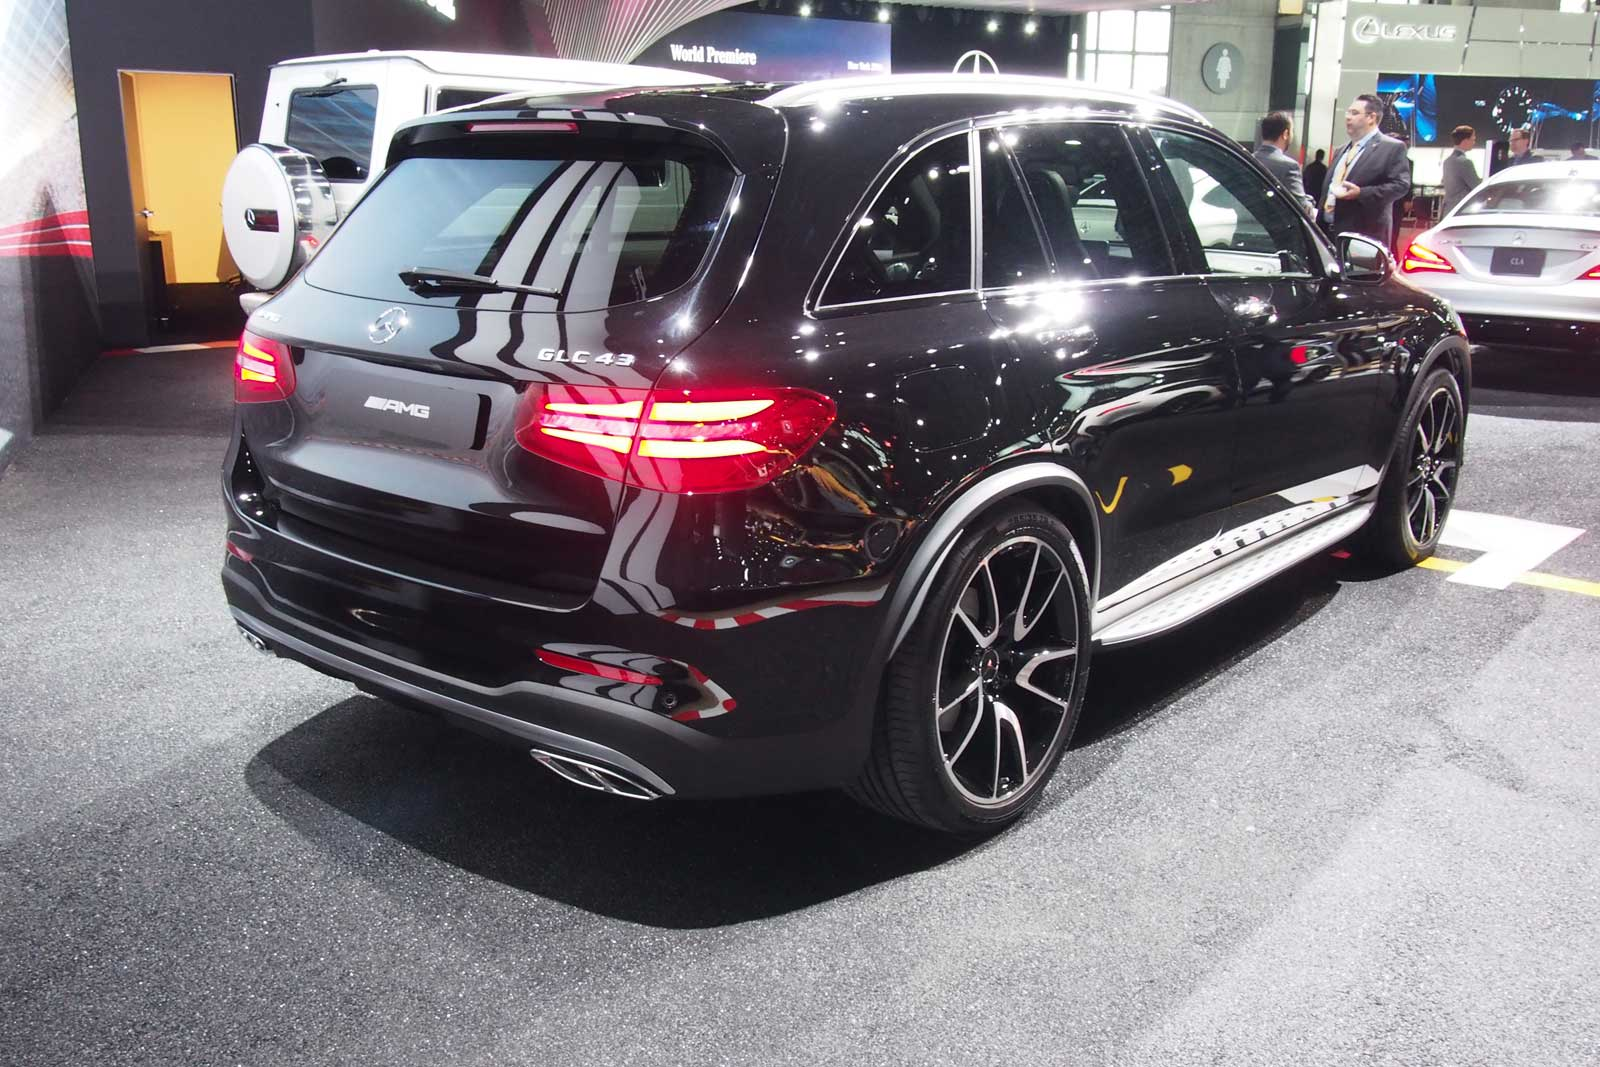 mercedes-amg glc43 arrives as amg's first midsize suv » autoguide